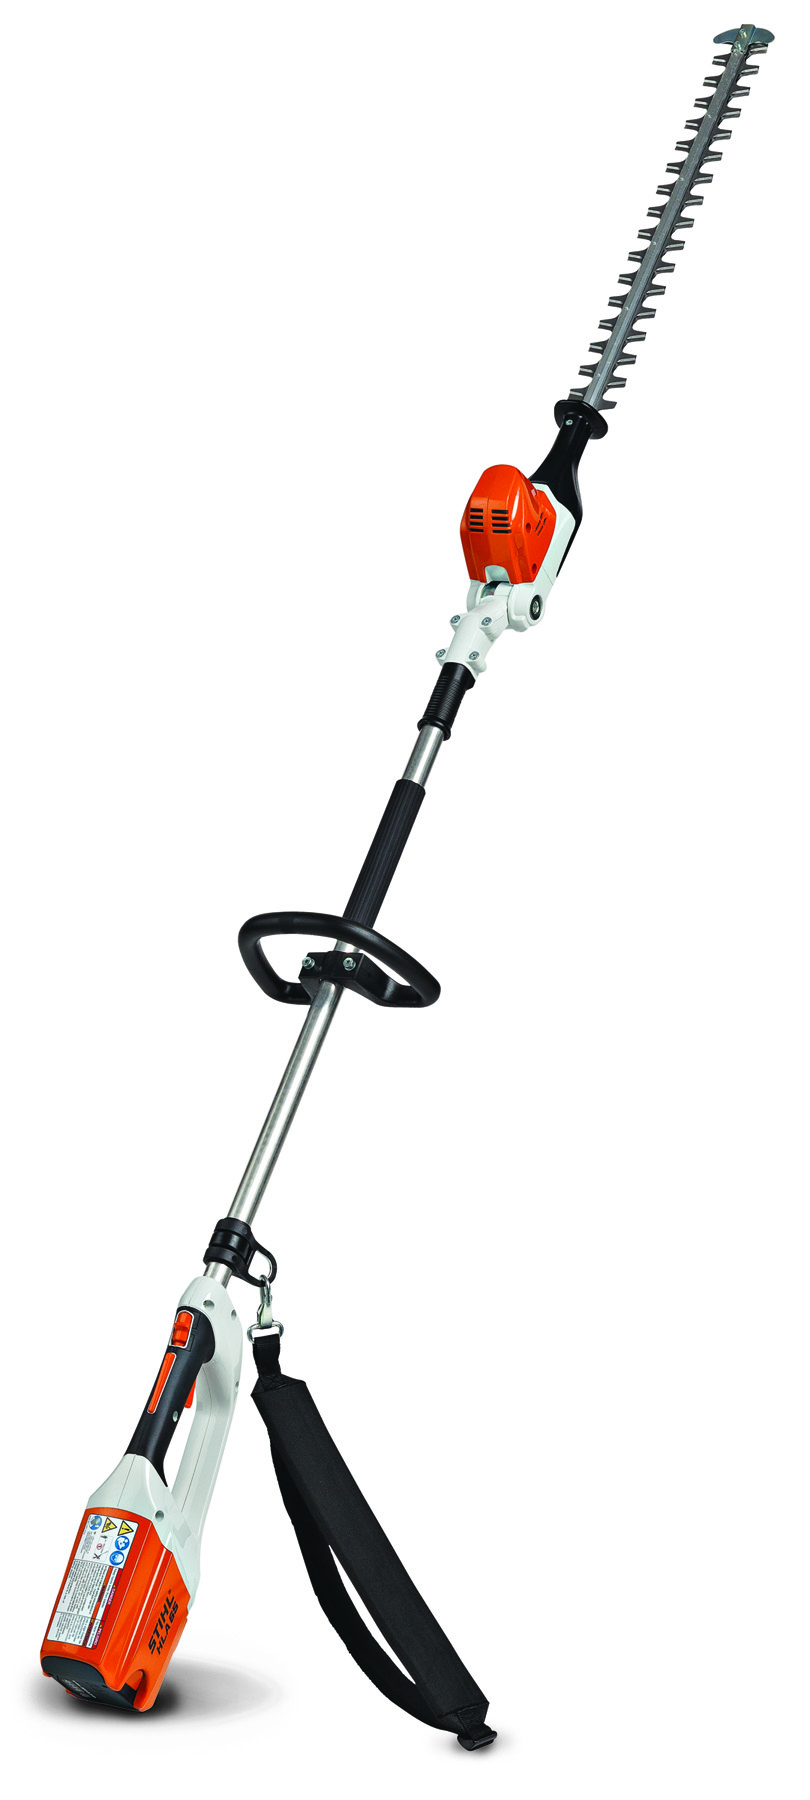 Hla 65 Extended Reach Battery Powered Hedge Trimmer